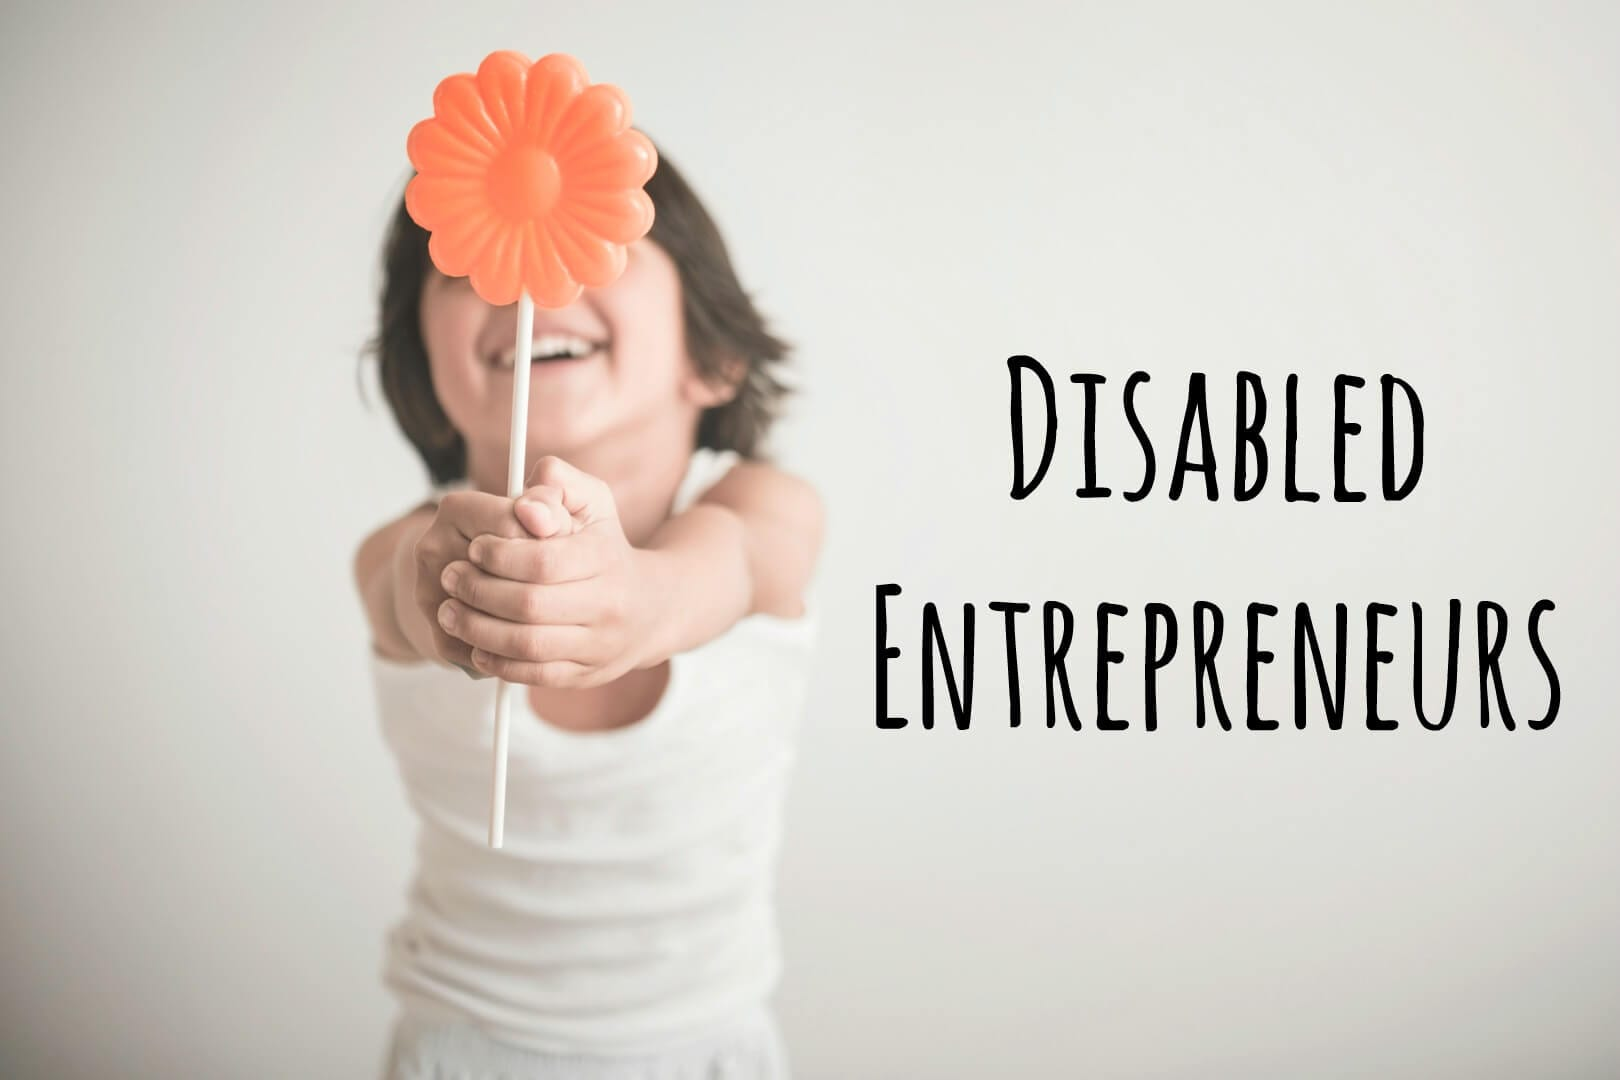 "photo for the gift guide for disability: image description: child holding orange flower in front of her smiiling face. Text to the right reads ""Disabled Entrepreneurs"""